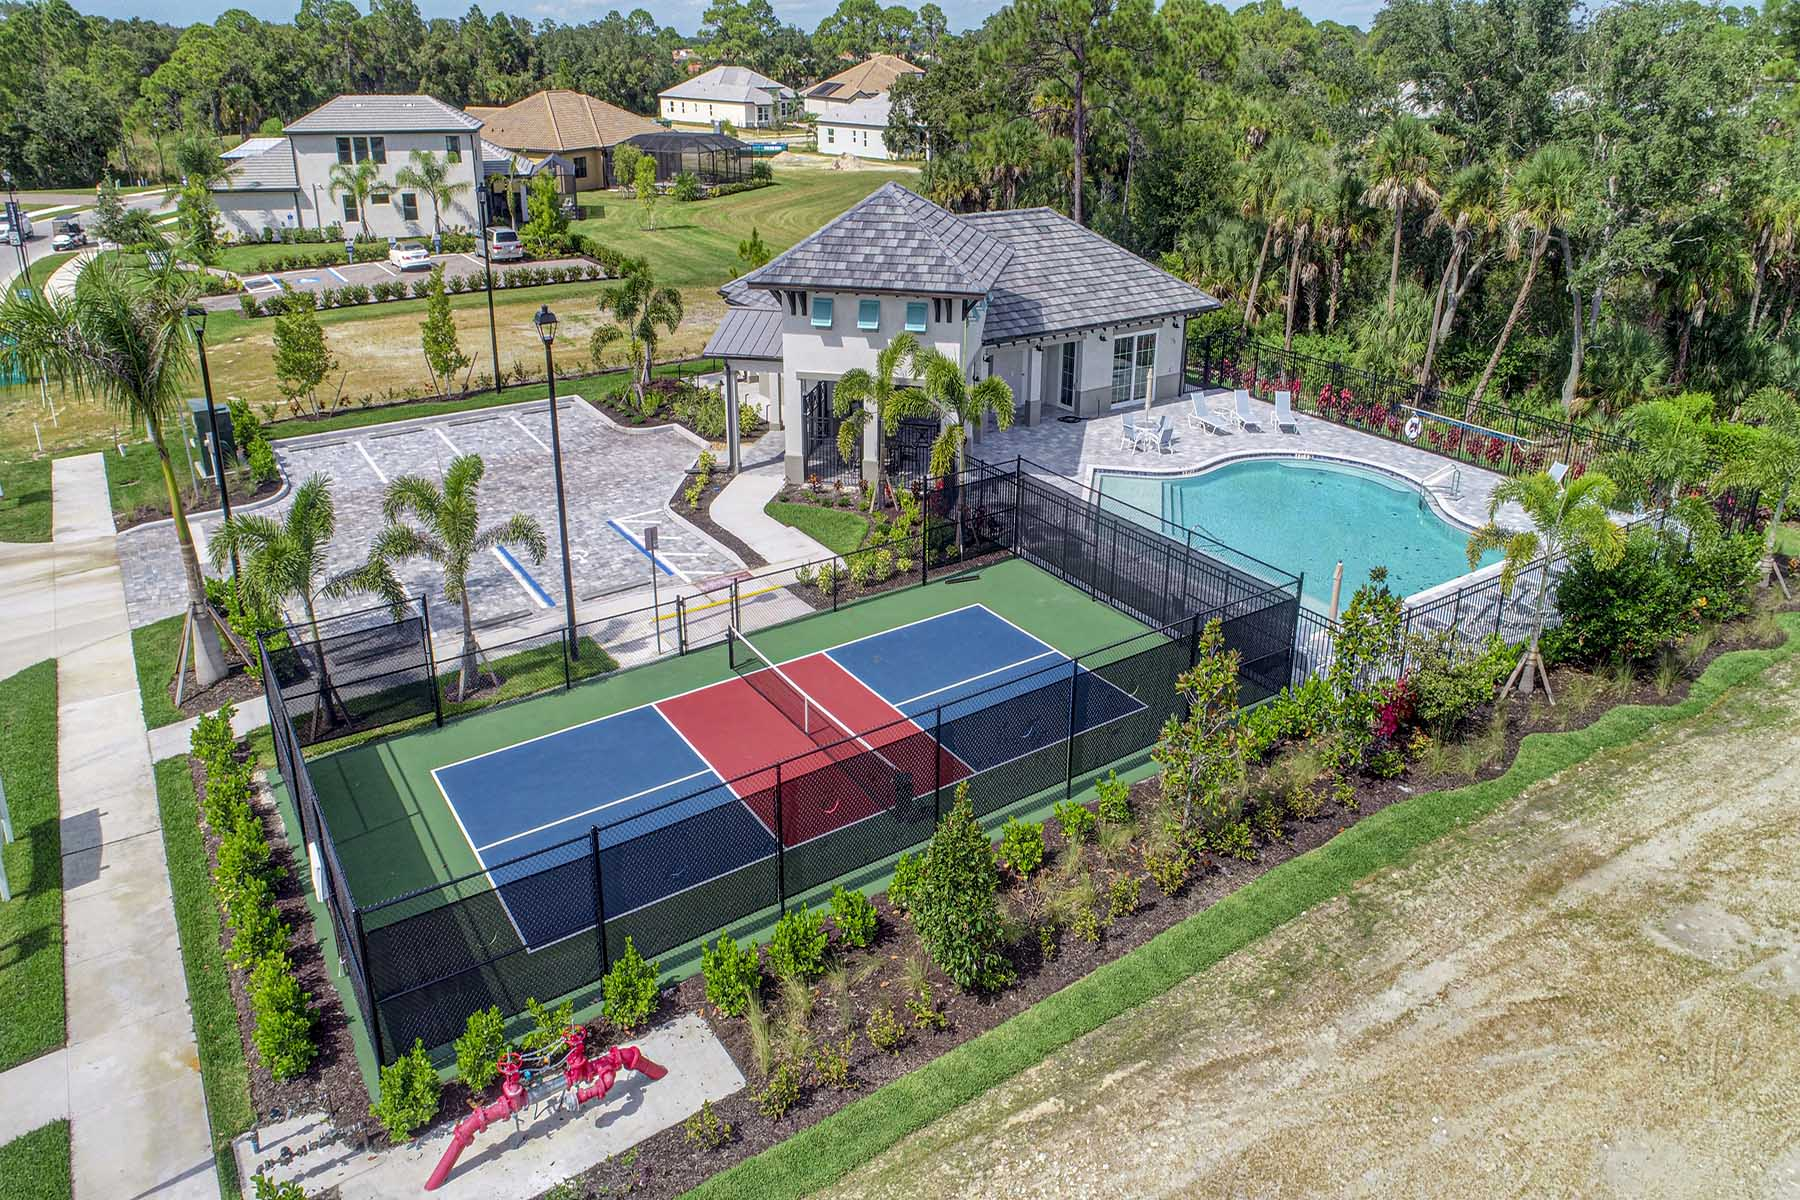 Oasis at West Villages Amenity Center